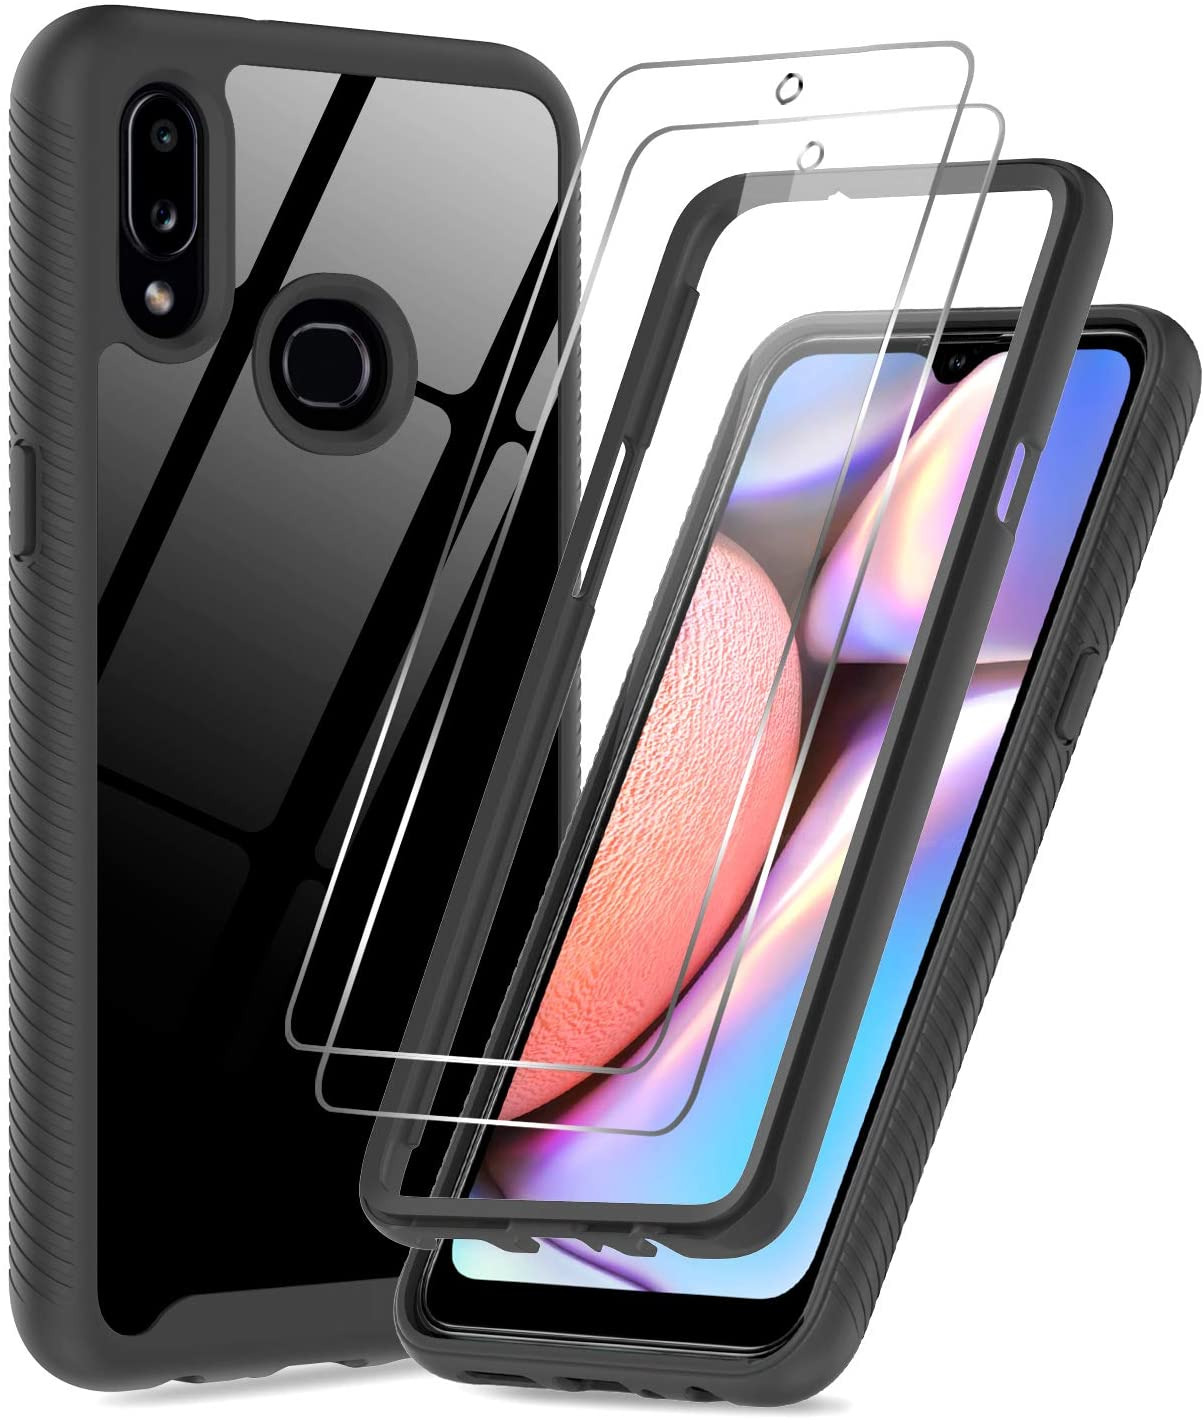 Samsung Galaxy A10S Case, Galaxy A10S Case with 2 Tempered Glass Screen Protector, LeYi Full-Body Protective Rugged Hybrid Bumper Shockproof Clear Phone Cases for Samsung A10S (Not Fit A10e), Black